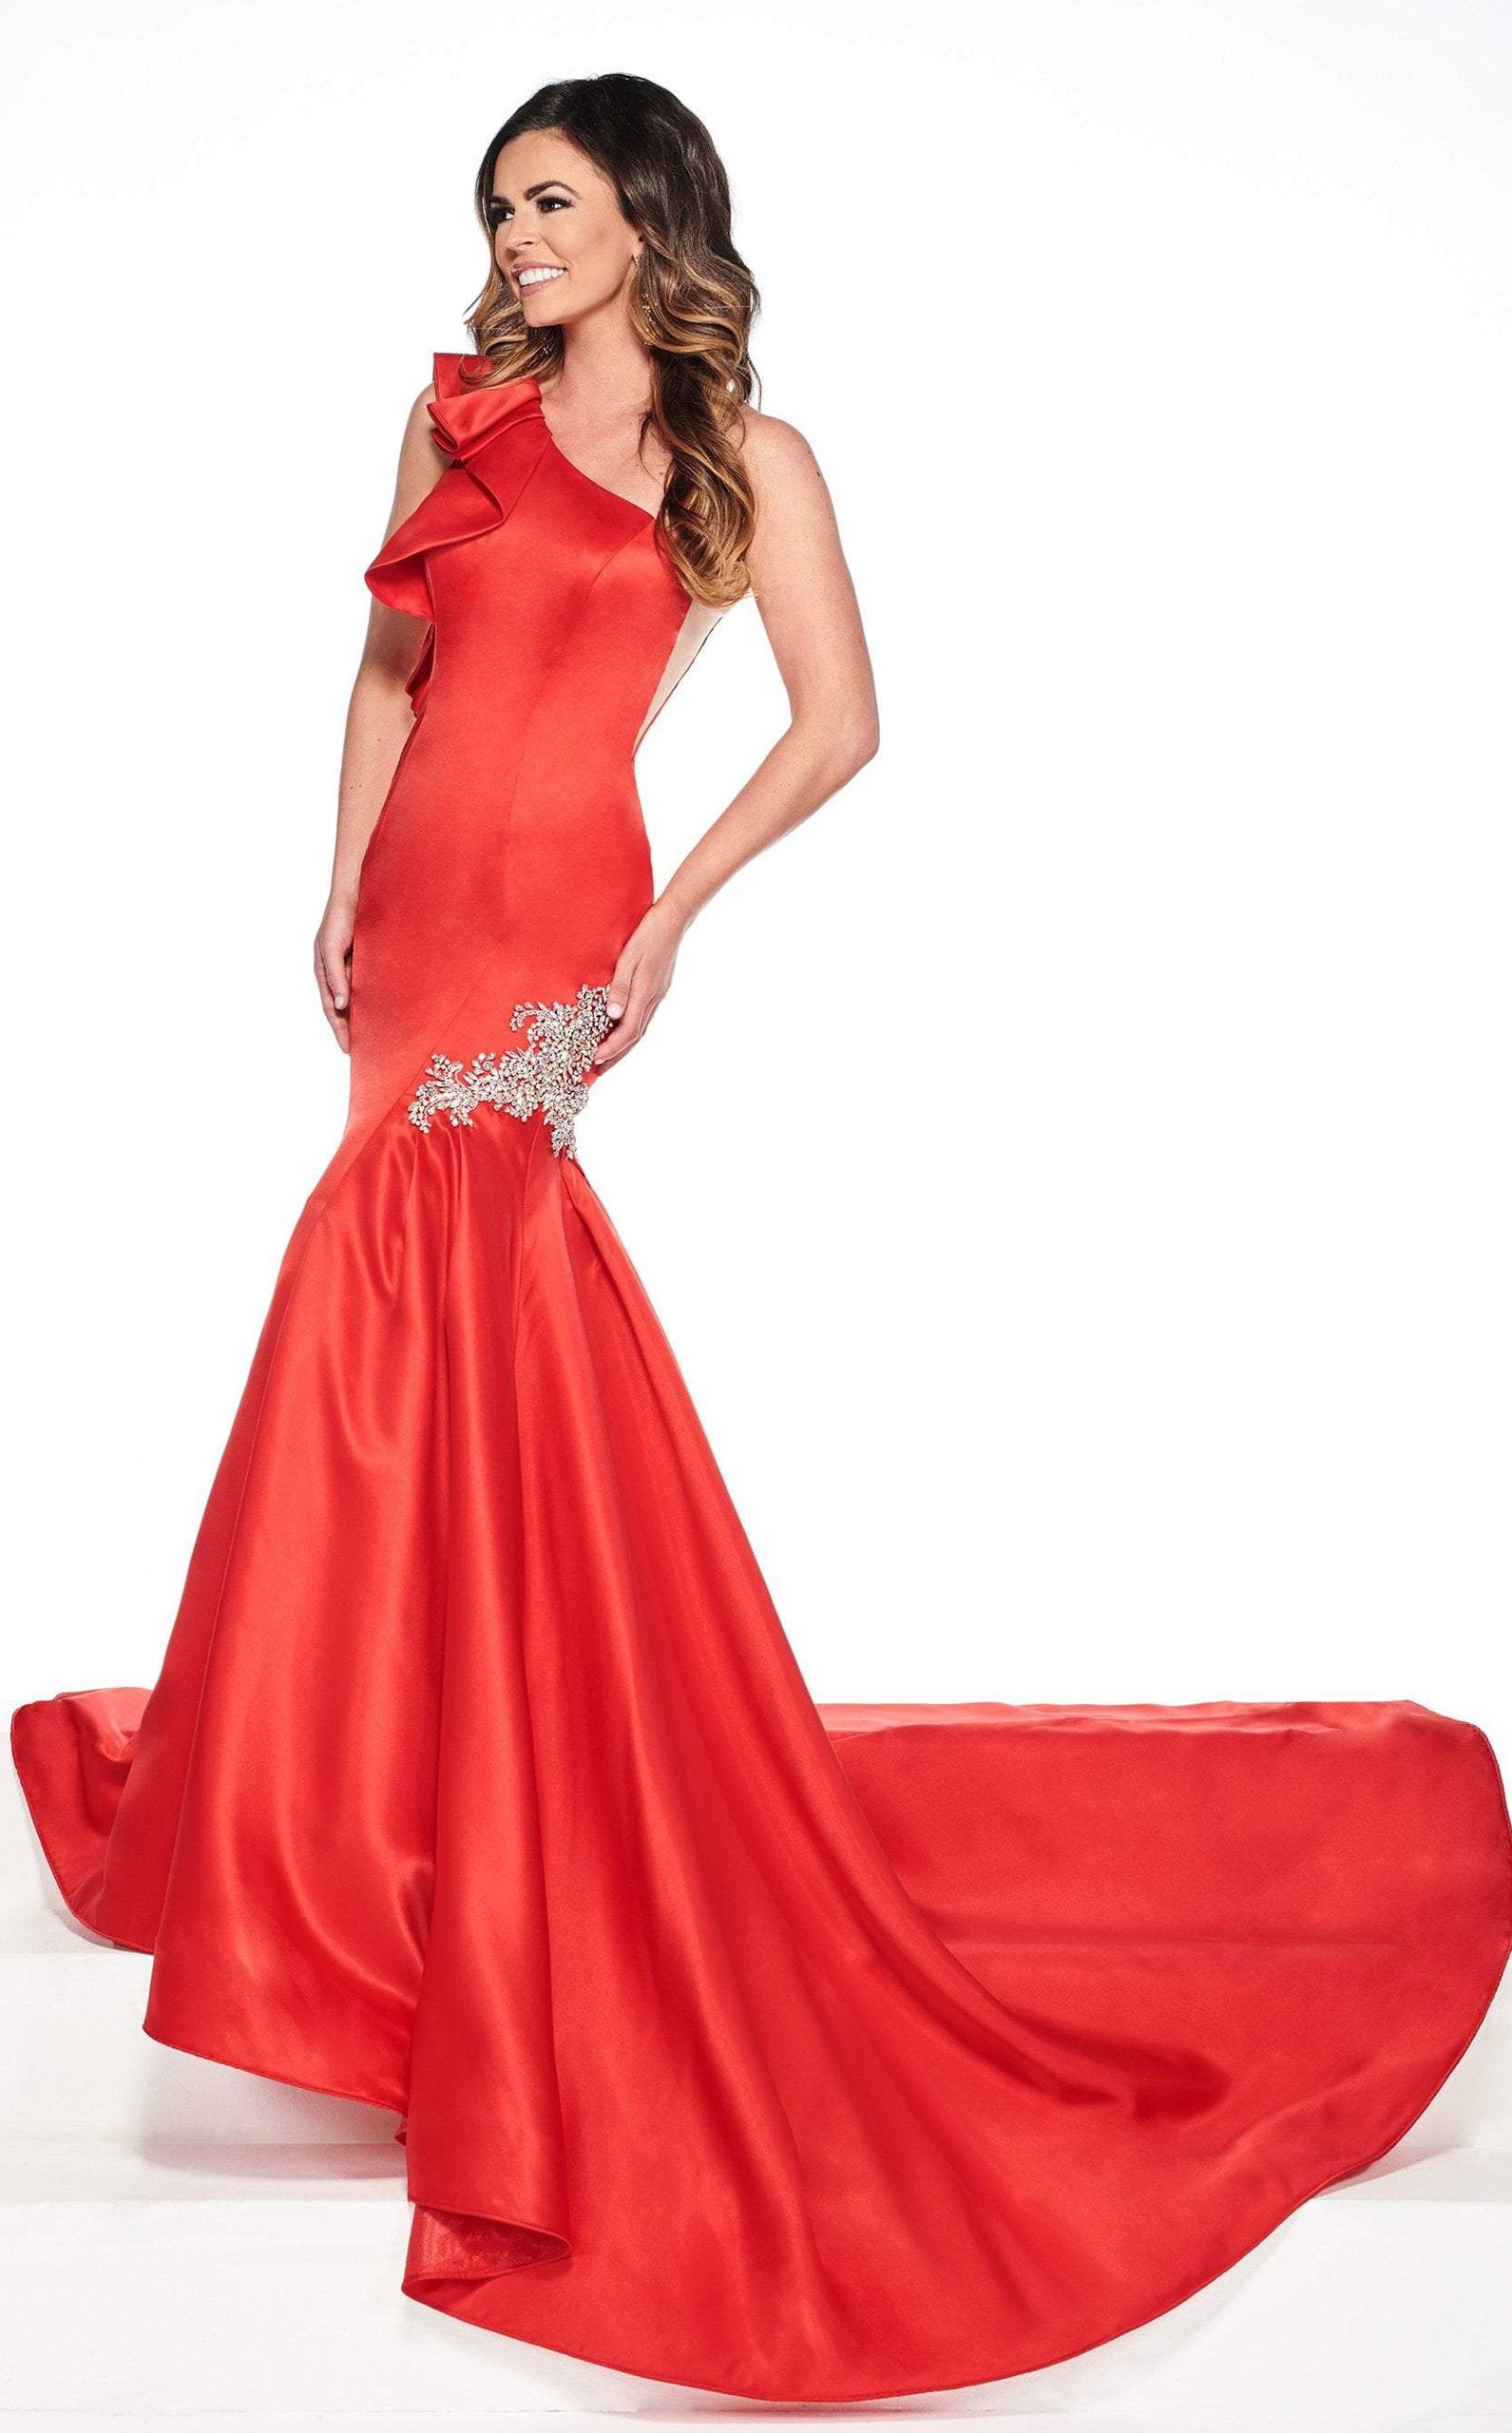 Rachel Allan Primadonna - 5084 Ruffled One Shoulder Satin Mermaid Gown In Red